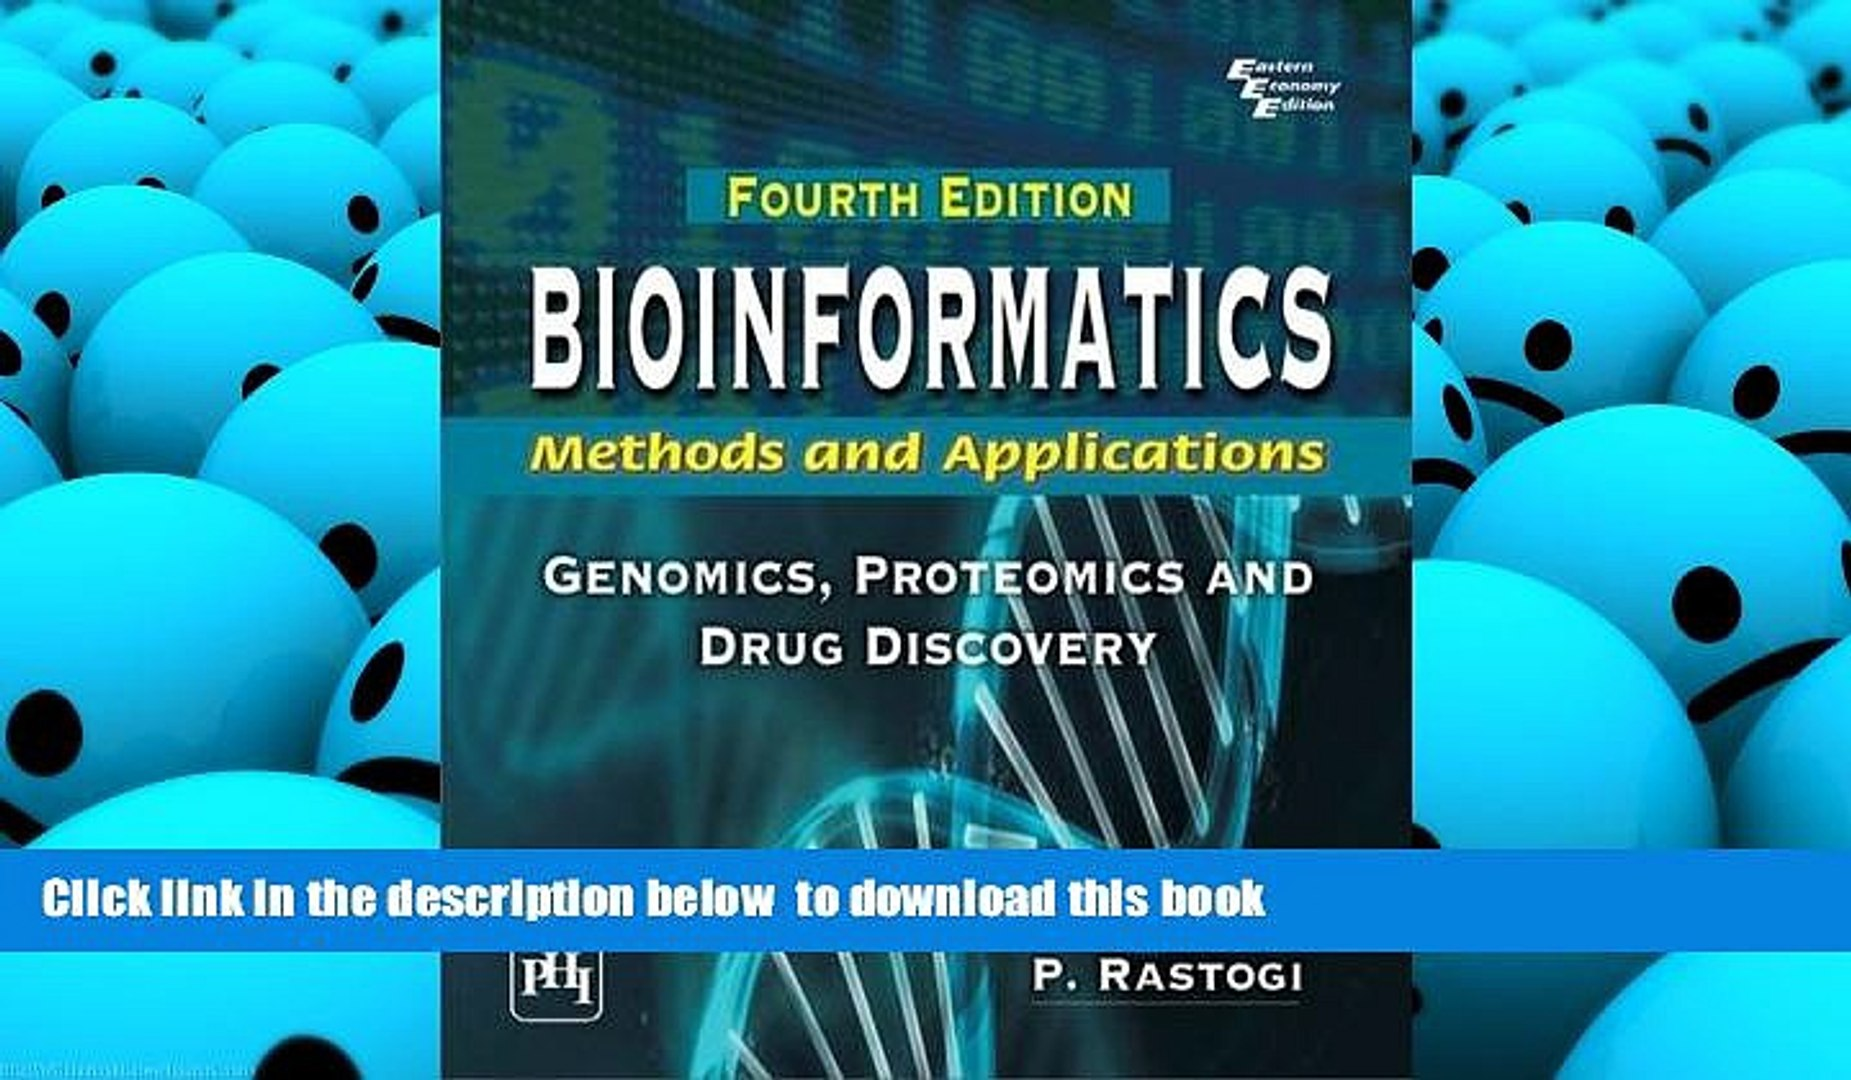 Bioinformatics -From Genomes to Drugs